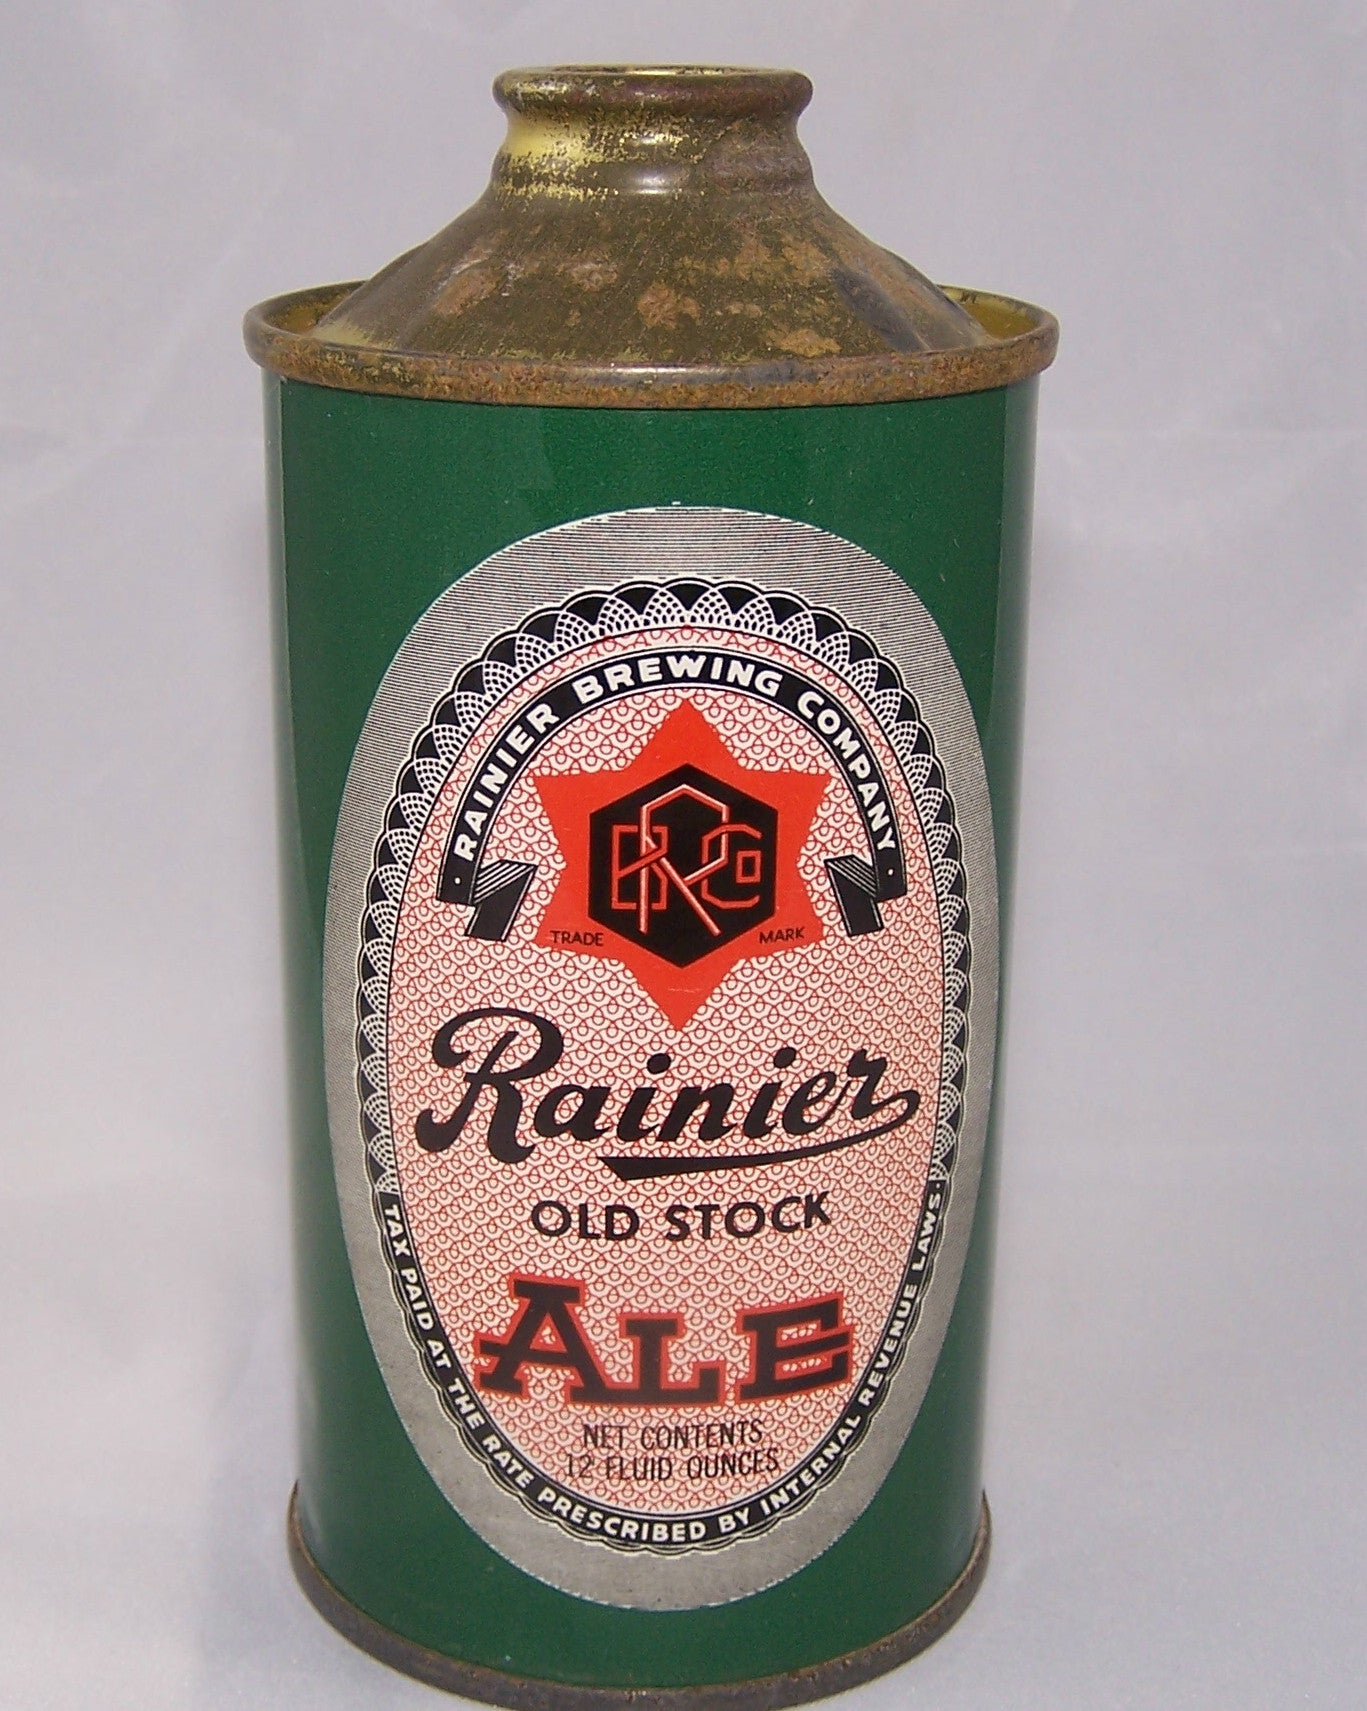 Rainier Old Stock Ale. USBC 180-4, Grade 1/1+ Sold on 08/25/16